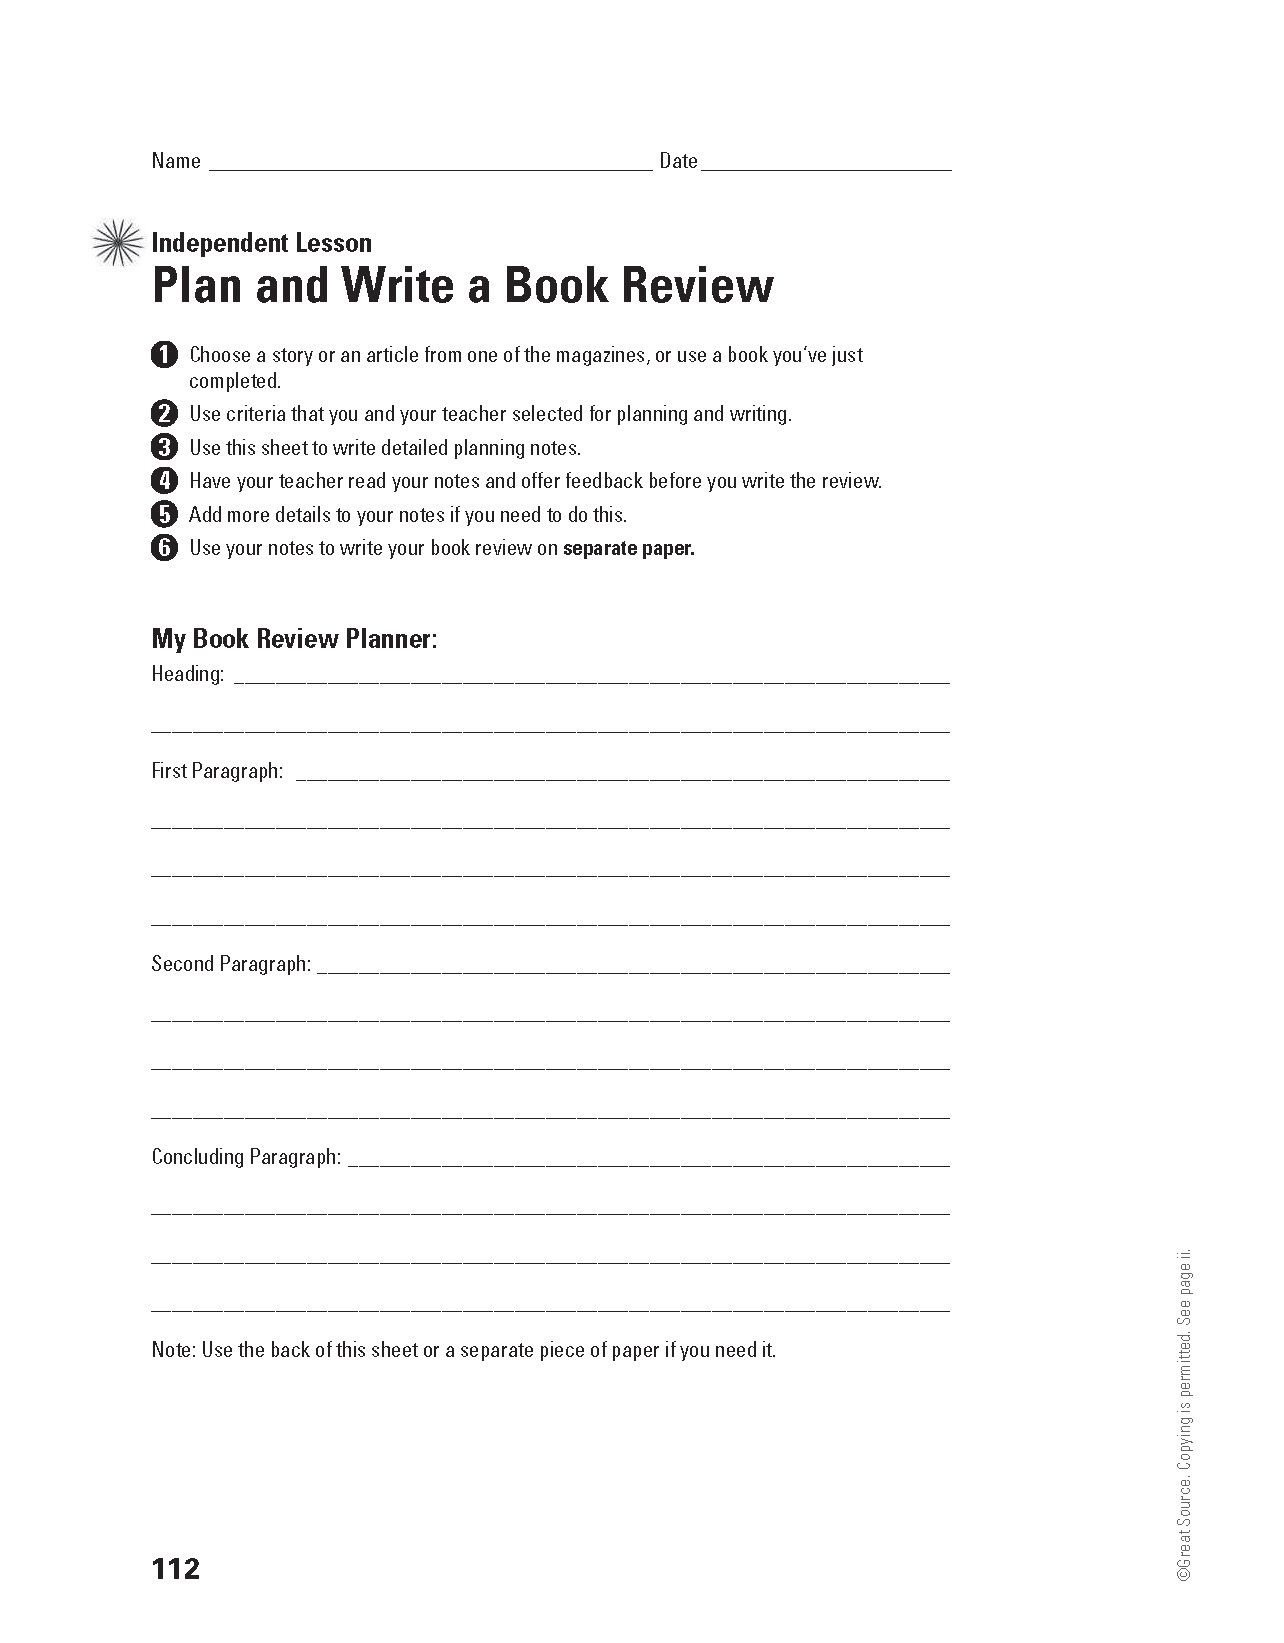 Plan And Write A Book Review Grades 6 8 Download And Print This Independent Lesson For Plannin Summer School Curriculum Summer School Writing A Book Review